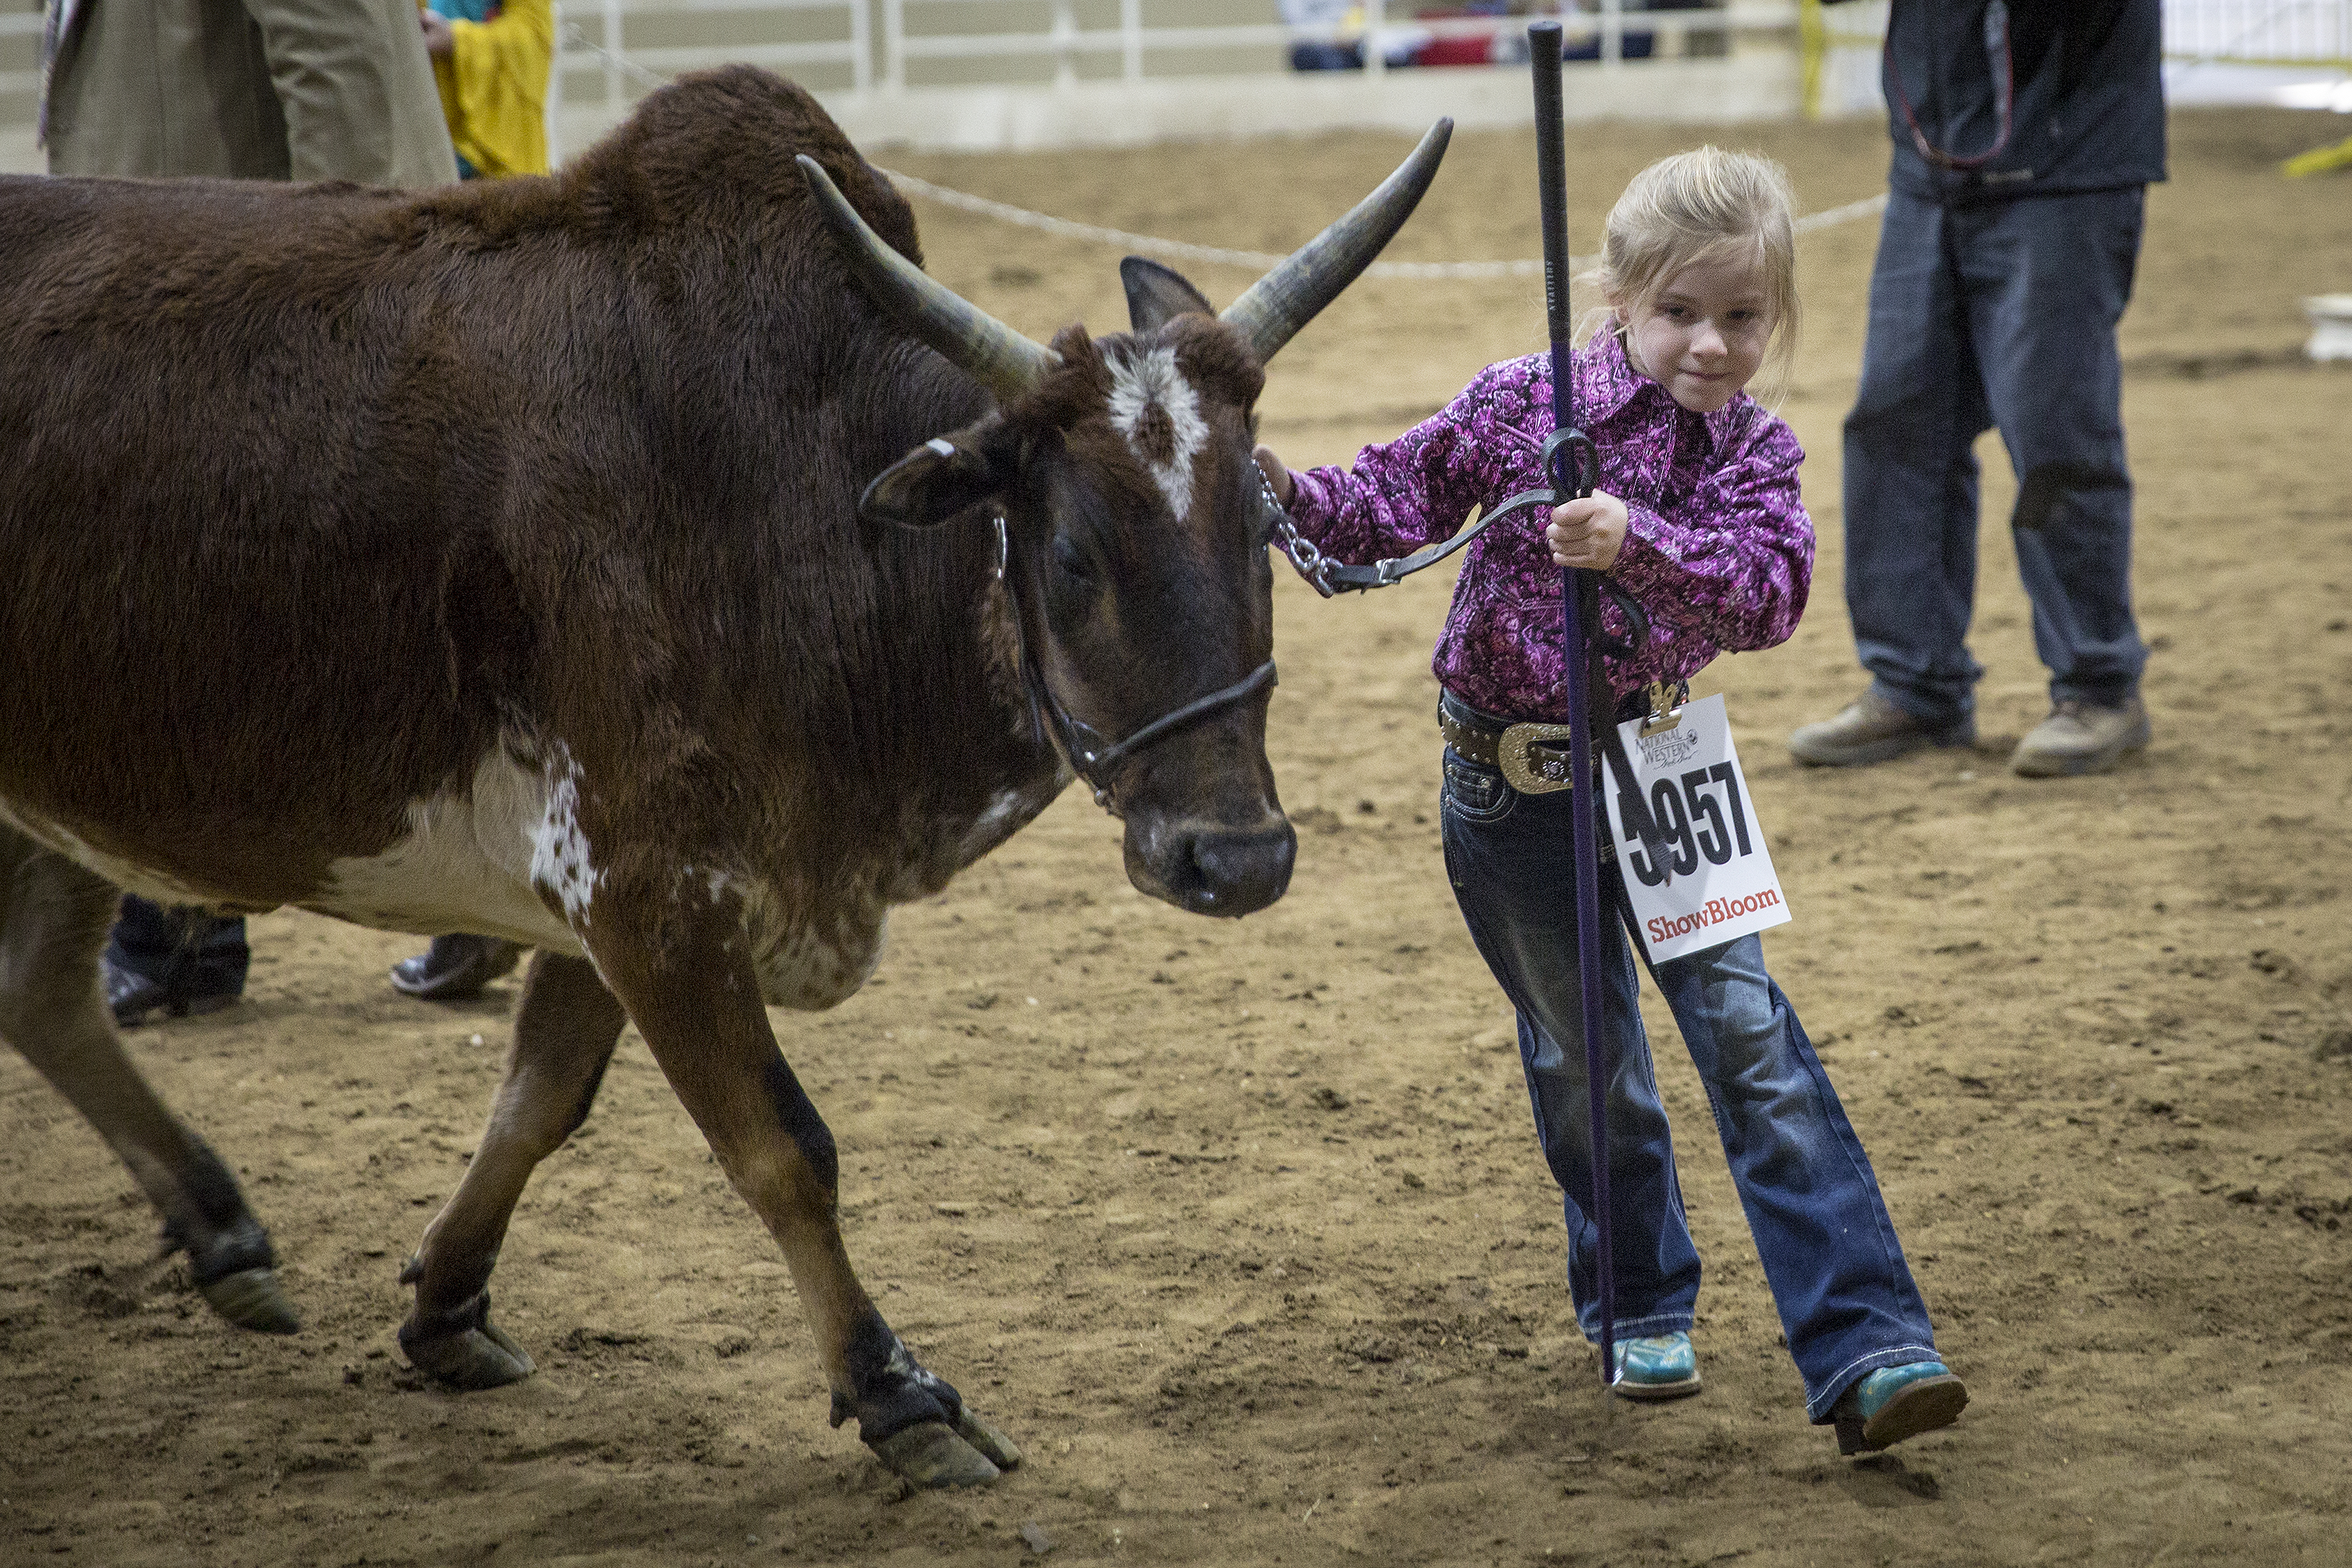 <p>Five-year-old Harley Rummel, of Bennett, helps raise, groom and show their family's zebus at the National Western Stock Show. Zebus are about one-third the size of regular cattle and native to India and parts of South Asia. Besides their small size they're also recognizable because of their distinctive humps and horns. In fact, the hump's size, shape and placement are a key part of how they're judged.</p>